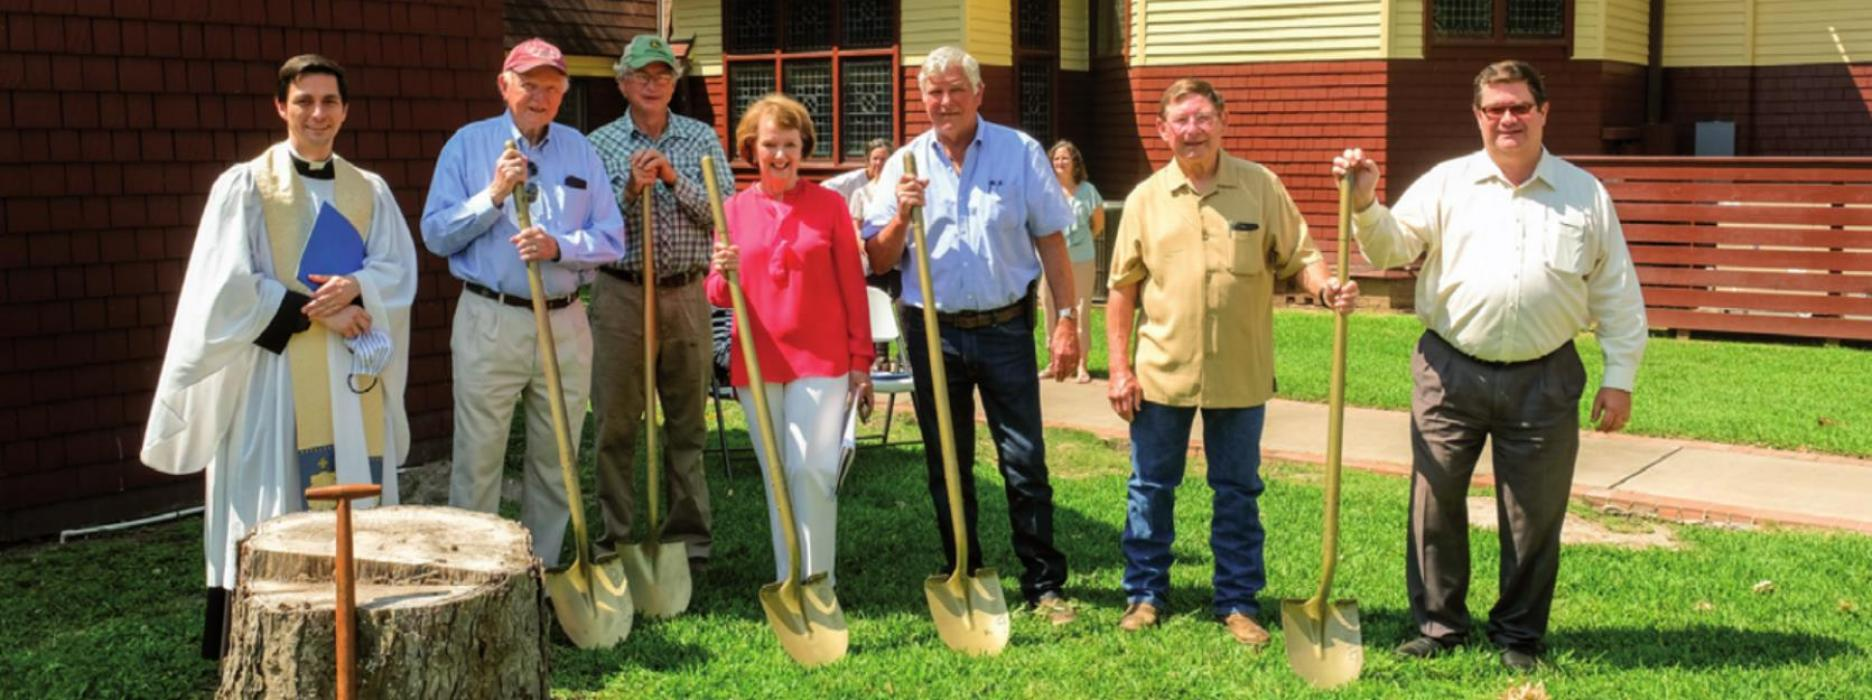 Members of the St. James Episcopal Church Construction Committee: (from left) Fr. Eric Hungerford, Mel Glasscock (chairman), James Cauble, Carol Helms, Joe Gaeke of Gaeke Construction, Chuck Gibson and Joe Jameson. Photo by Andy Behlen